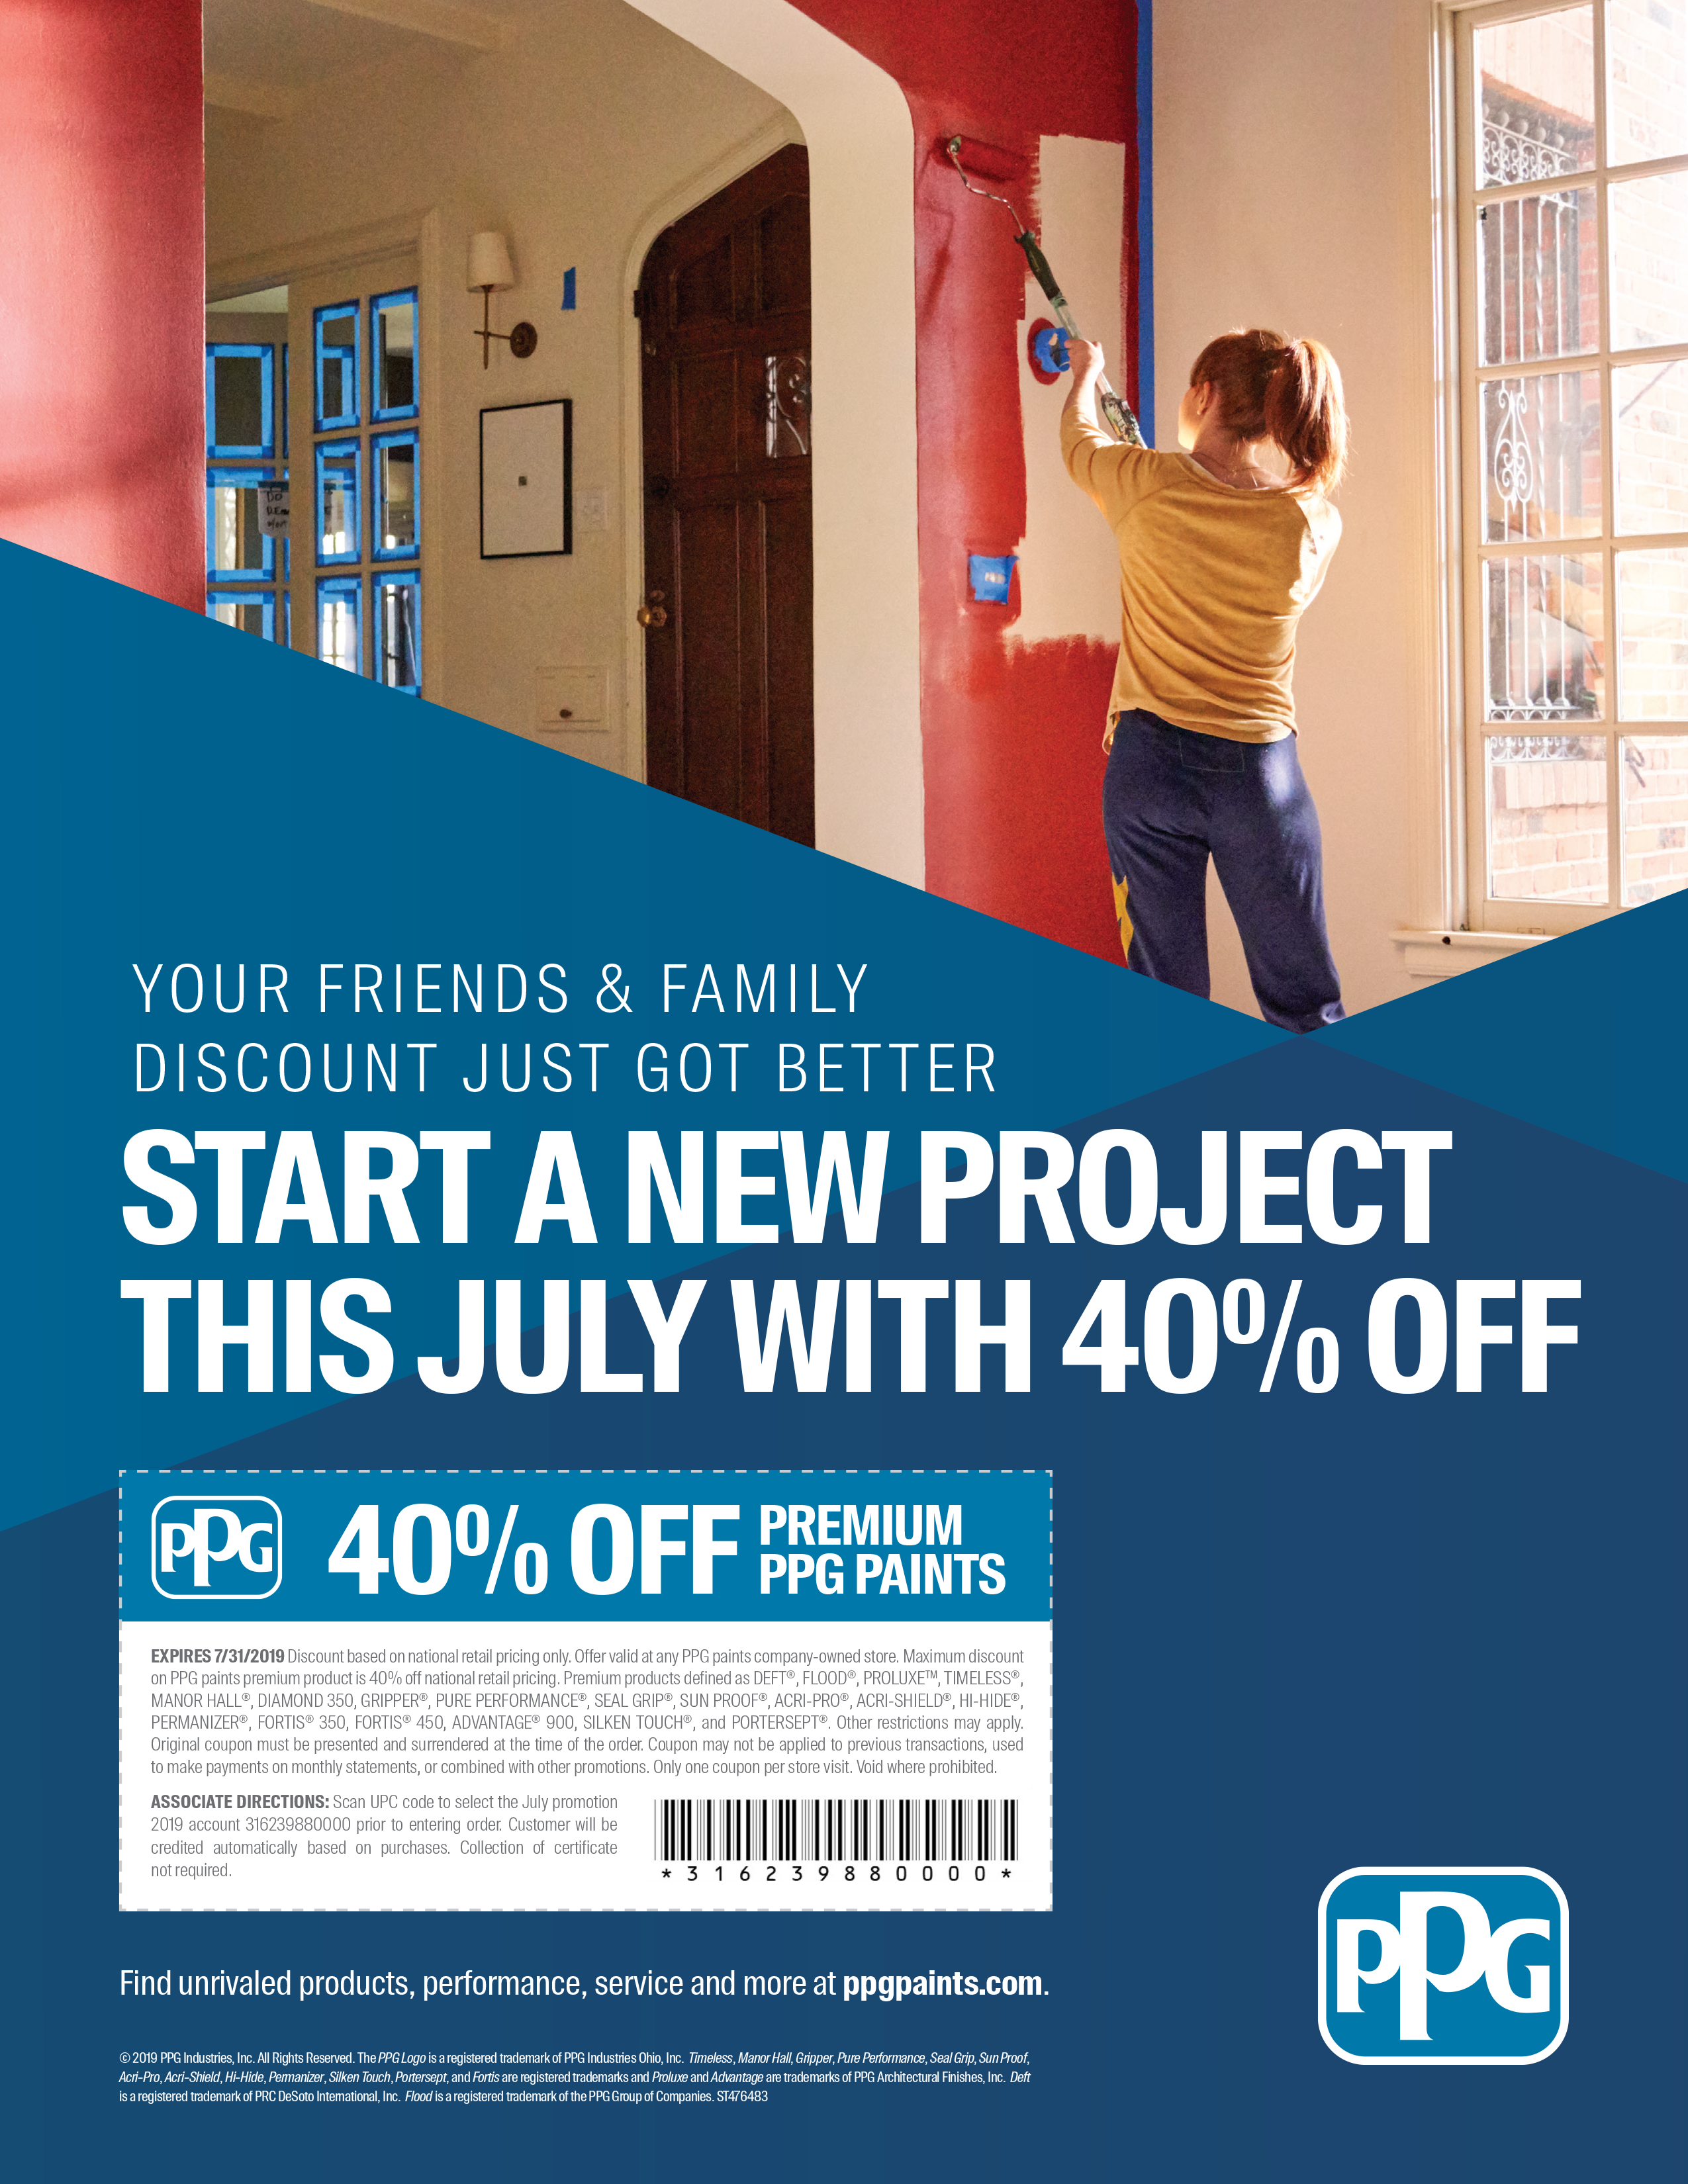 PPG FRIENDS AND FAMILY DISCOUNT - PPG - Paints, Coatings and Materials